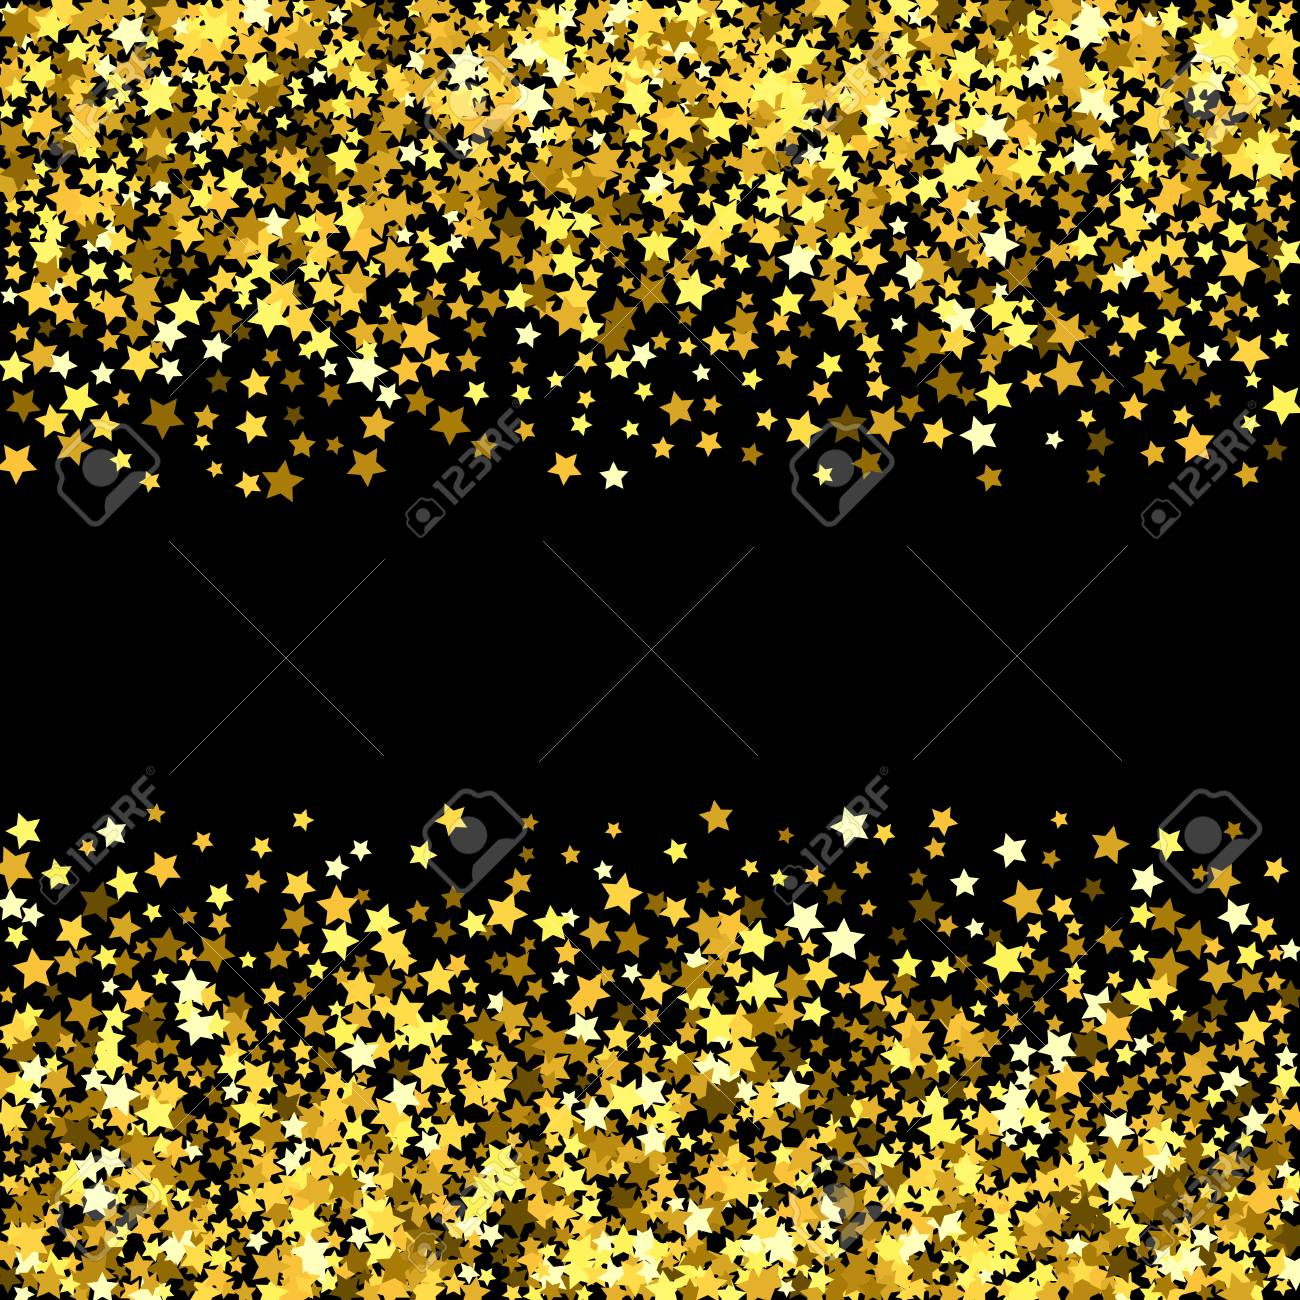 abstract pattern of random falling gold stars on black background